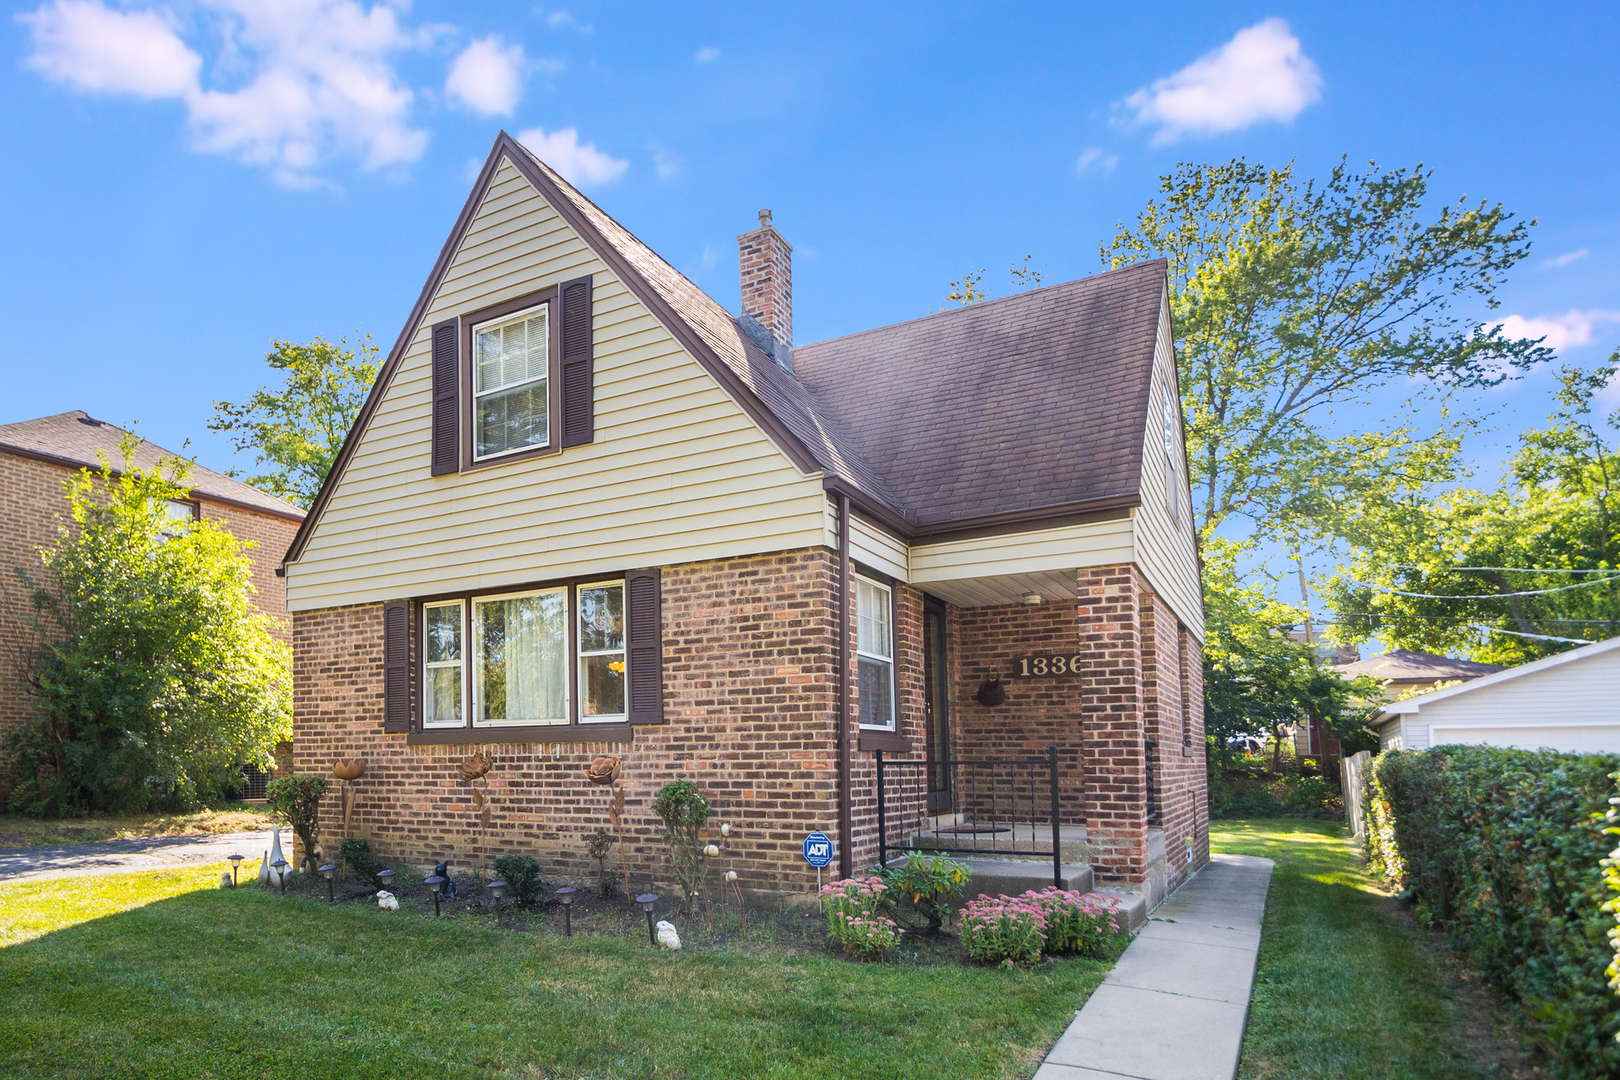 """NESTLED ON QUIET HEIDORN AVENUE IS THIS BEAUTIFUL 1 1/2 STORY 3 BEDROOM, 1 BATH HOME THAT'S READY FOR NEW OWNERS! MASSIVE UNDERTAKING OF IMPROVEMENTS IN THE PAST FEW YEARS INCLUDING HVAC 2018, ALL HARDWOOD FLOORING REFINISHED IN 2018, SUMP PUMP 2021, HUMIDIFIER & SOME APPLIANCES. TRADITIONAL L-SHAPED LIVING/DINING ROOM WITH WARM INVITING COLORS/SURROUND SOUND  & NEW LIGHTING. THE KITCHEN HAS 32"""" OAK CABINETS REPAINTED WHITE/NEW QUARTZ COUNTERTOPS & BACKSPLASH. 2ND FLOOR HAS 2 LARGER BEDROOMS INCLUDING MASTER BEDROOM W/BUILT-IN ENTERTAINMENT AREA & GOOD CLOSET SPACE. FINISHED BASEMENT HAS LAUNDRY CLOSET/GLASSBLOCK WINDOWS/POSSIBLE 4TH BEDROOM OR OFFICE IN BASEMENT AND FAMILY ROOM. 3 SEASON ROOM OFF REAR OF THE HOME THAT'S SCREENED. SIDE DRIVE LEADS TO DETACHED 2 1/2 CAR GARAGE."""